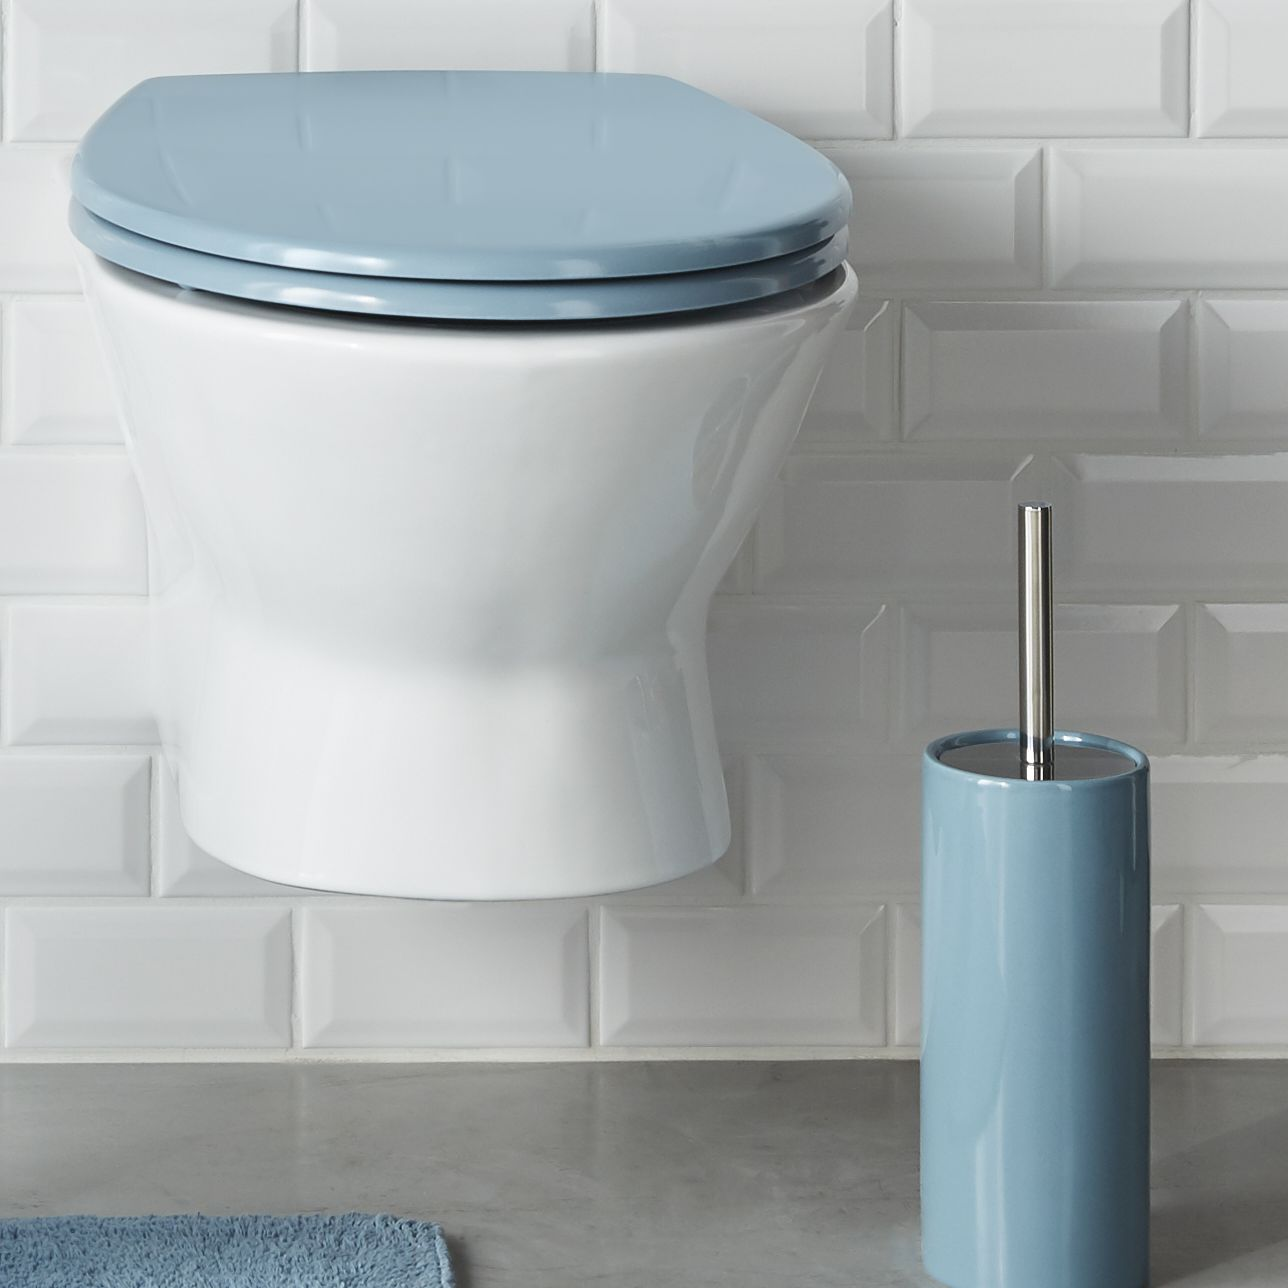 Bathroom and toilet accessories - Toilet Accessories